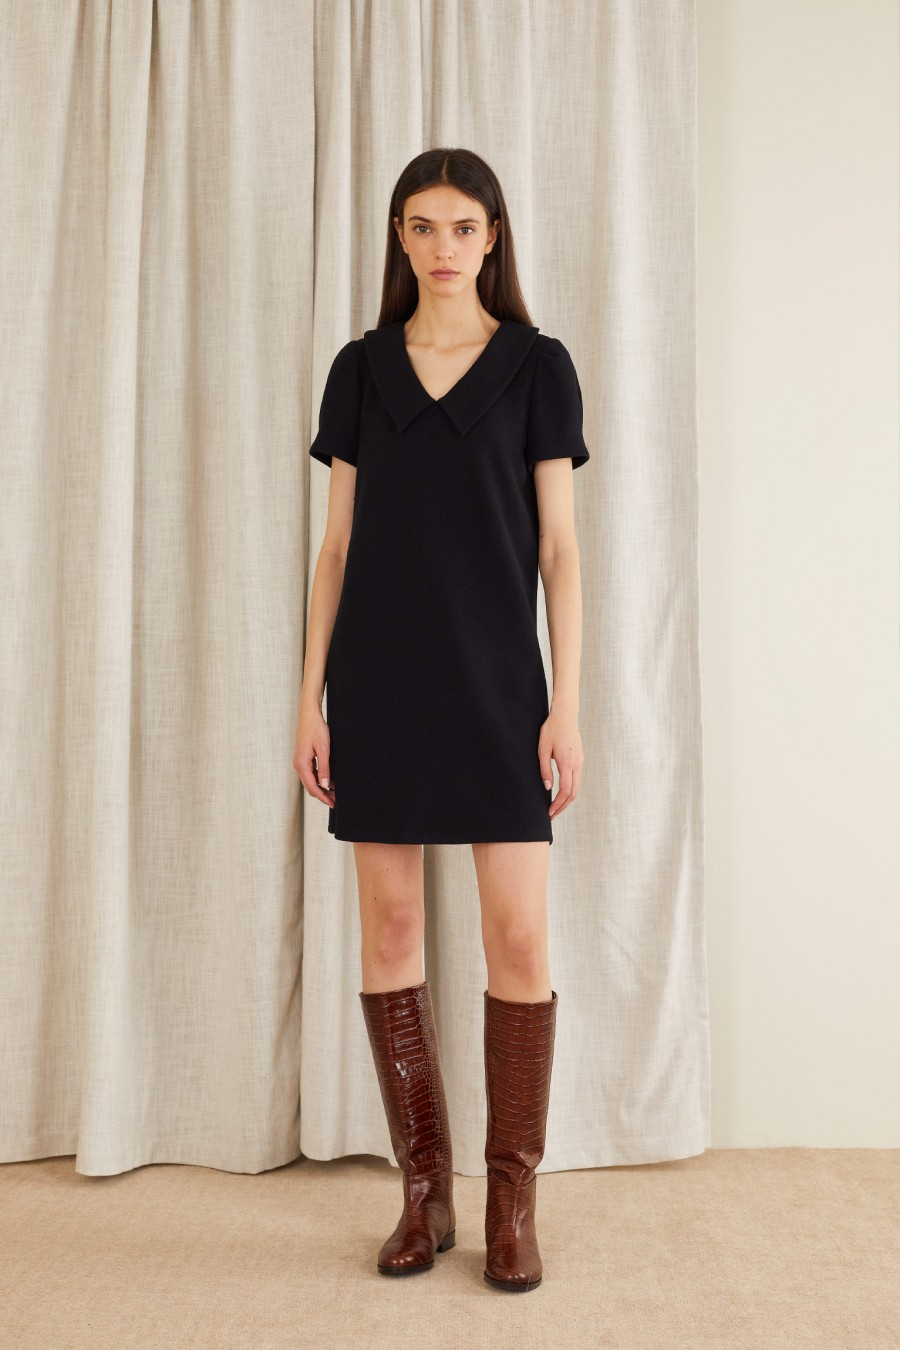 black dress with sculptural sleeves